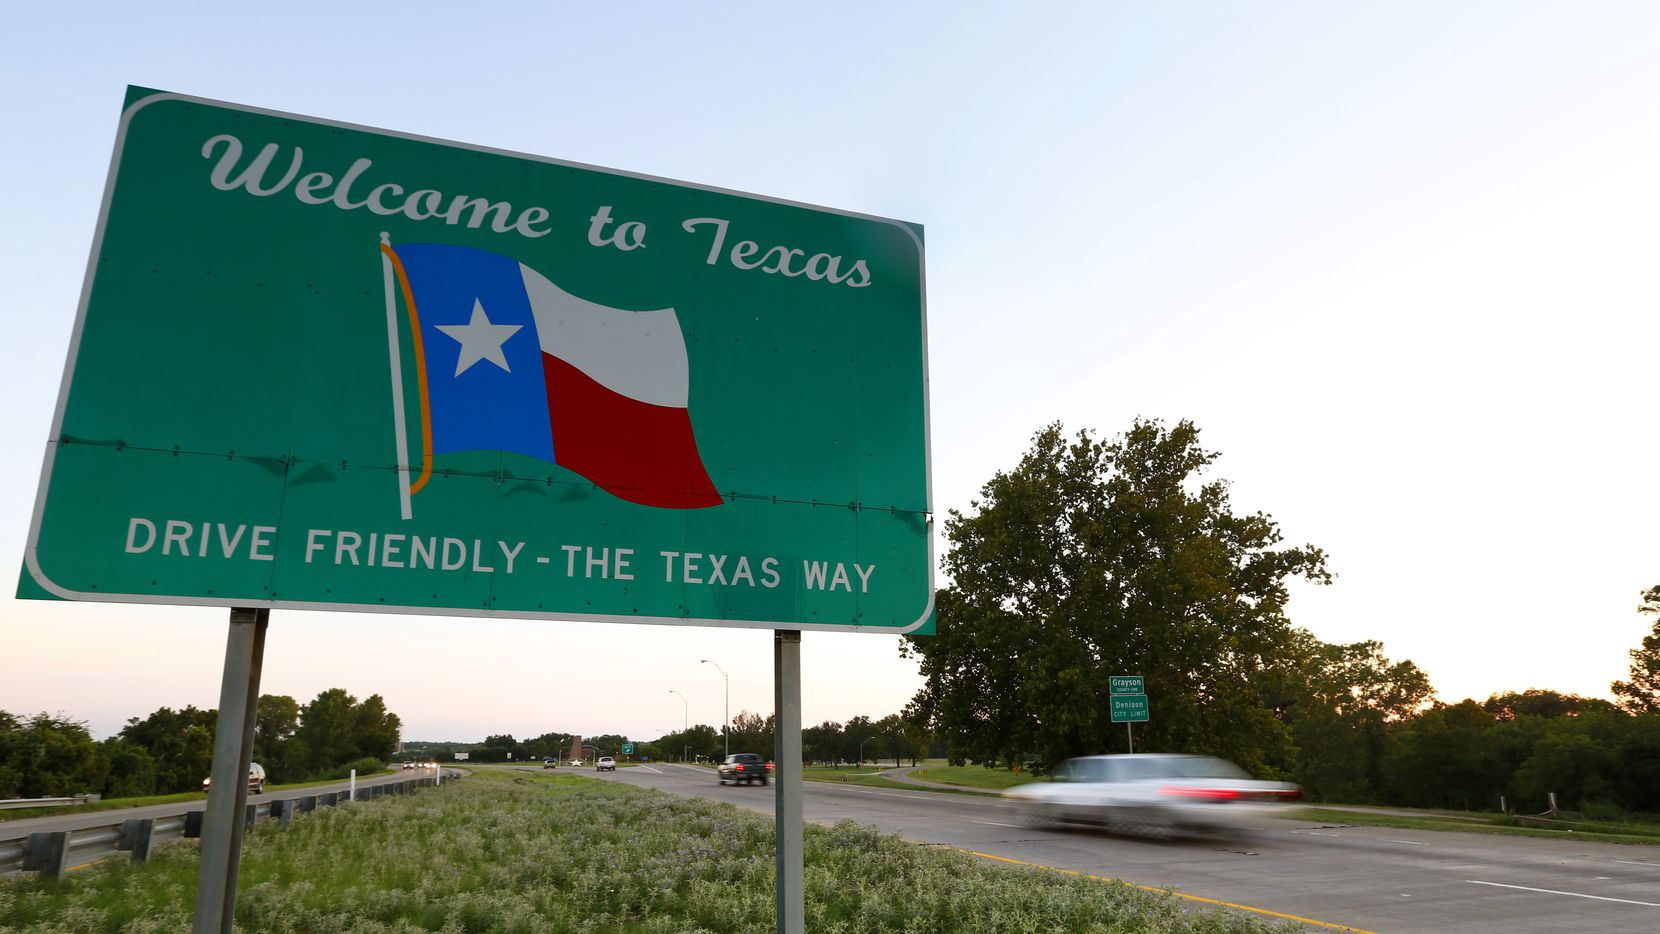 Some Texans are fretting about California migrants and the state's changing demographics.